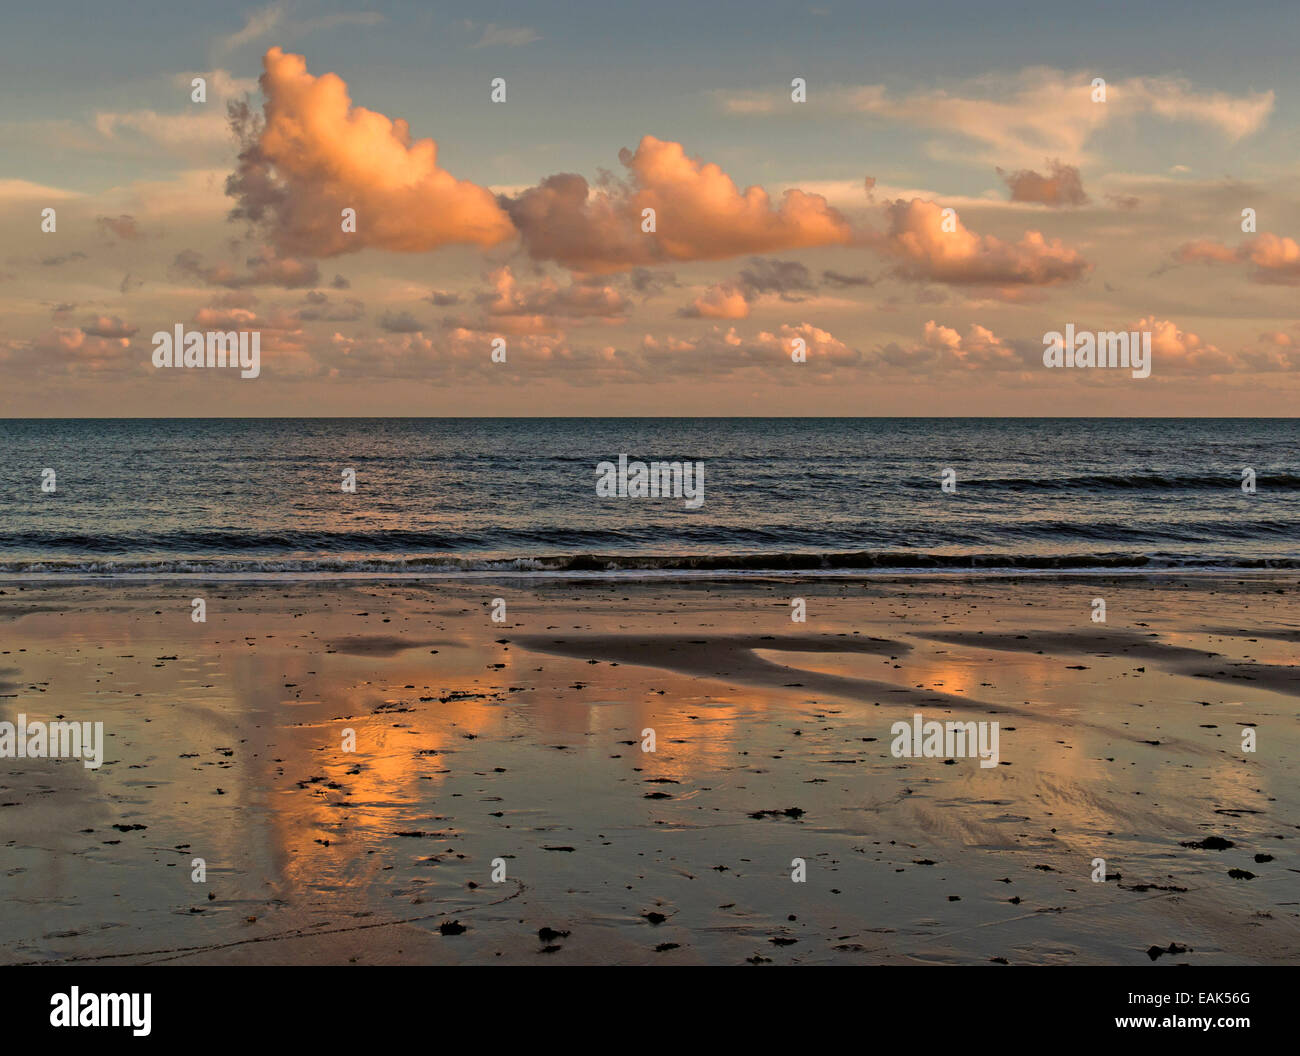 Clouds at Sunset over Poole bay reflected on West Beach, Bournemouth, Dorset, UK Stock Photo